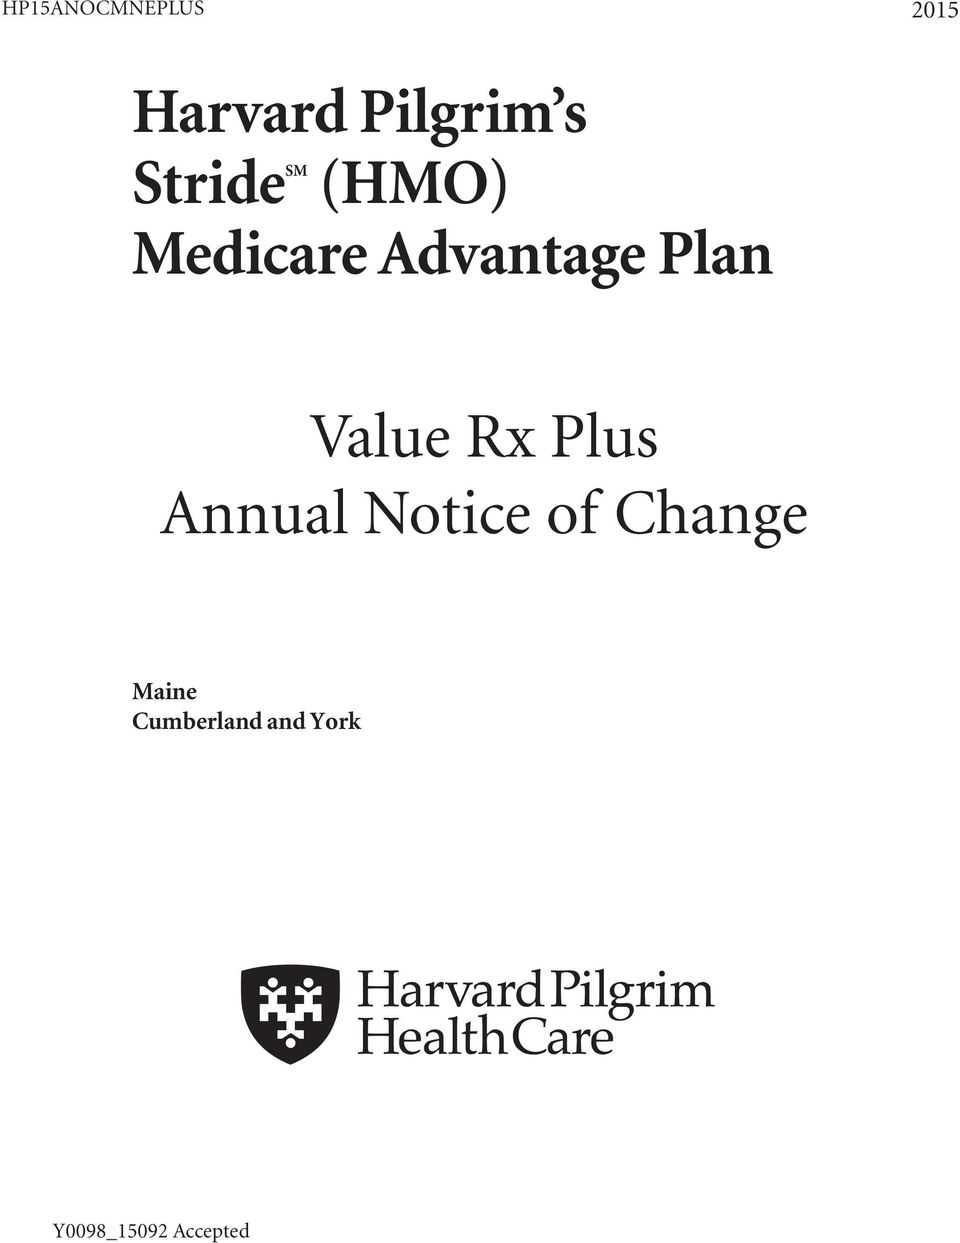 Value Rx Plus Annual Notice of Change